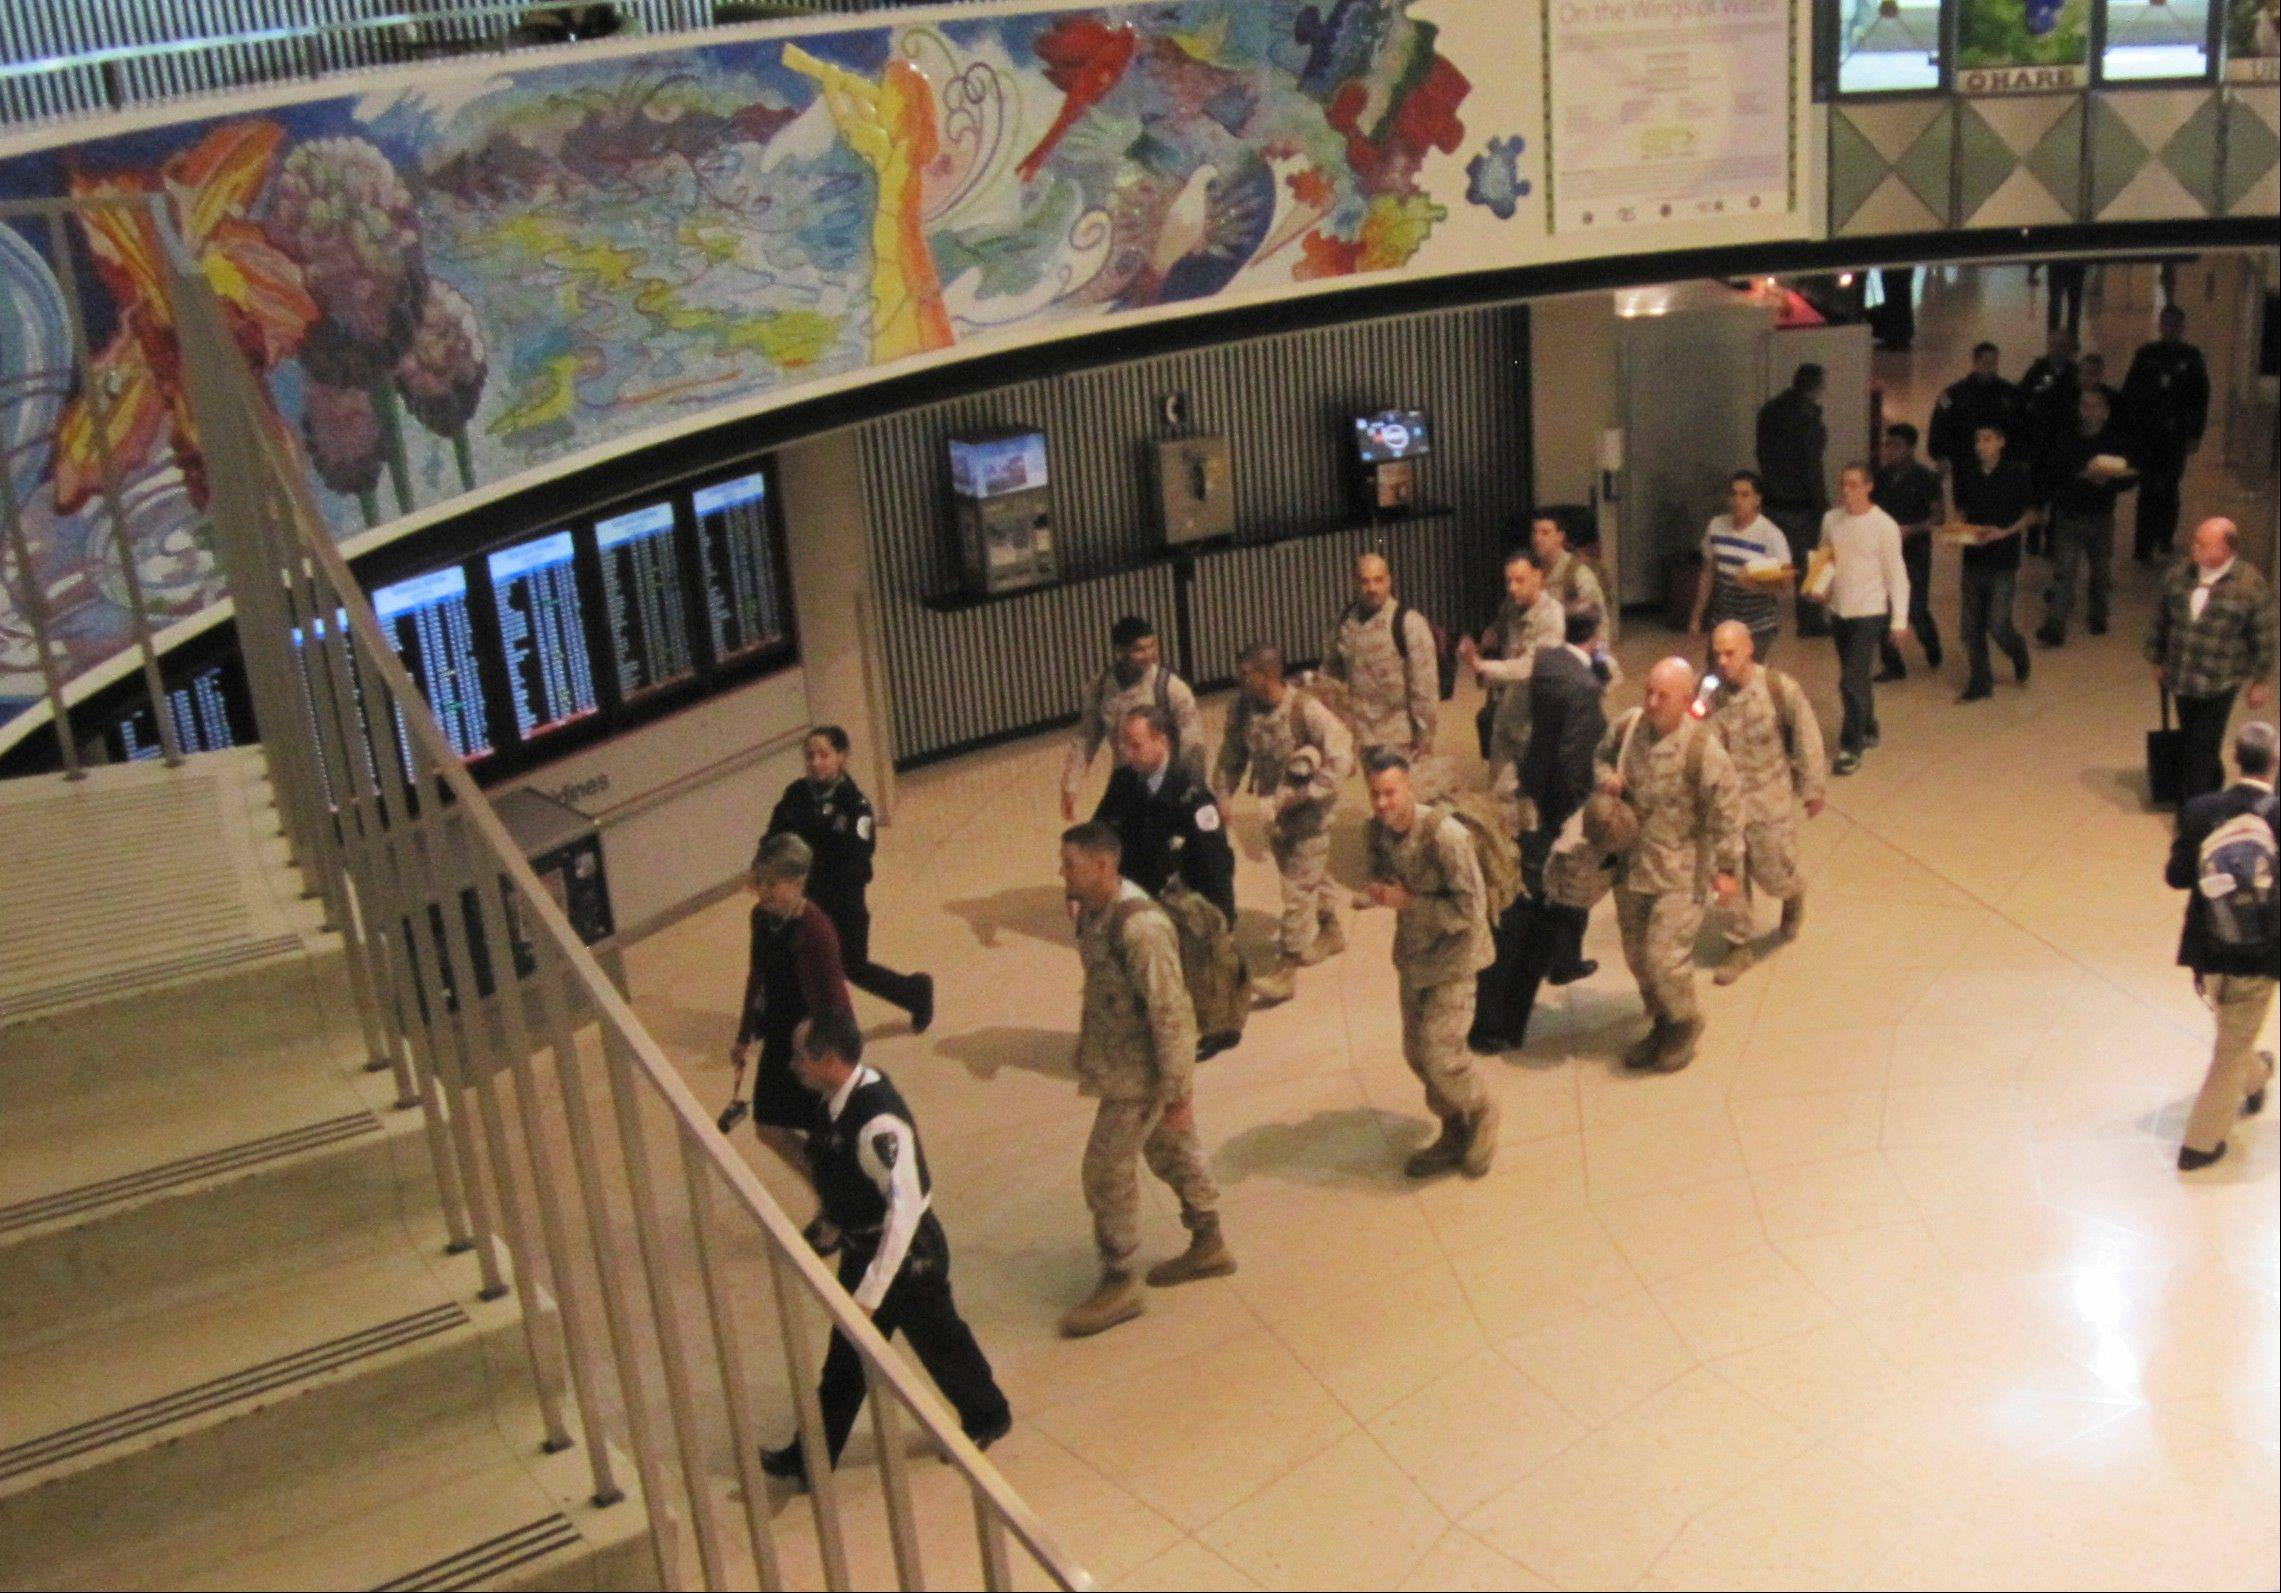 Marines walk through a terminal at O'Hare International Airport during part of their journey back home after a tour of duty in Afghanistan. The Marines were treated like heroes at the airport after a retired Marine and some others were not going to let them make the final leg of their journey to San Diego without thanking them for their service.